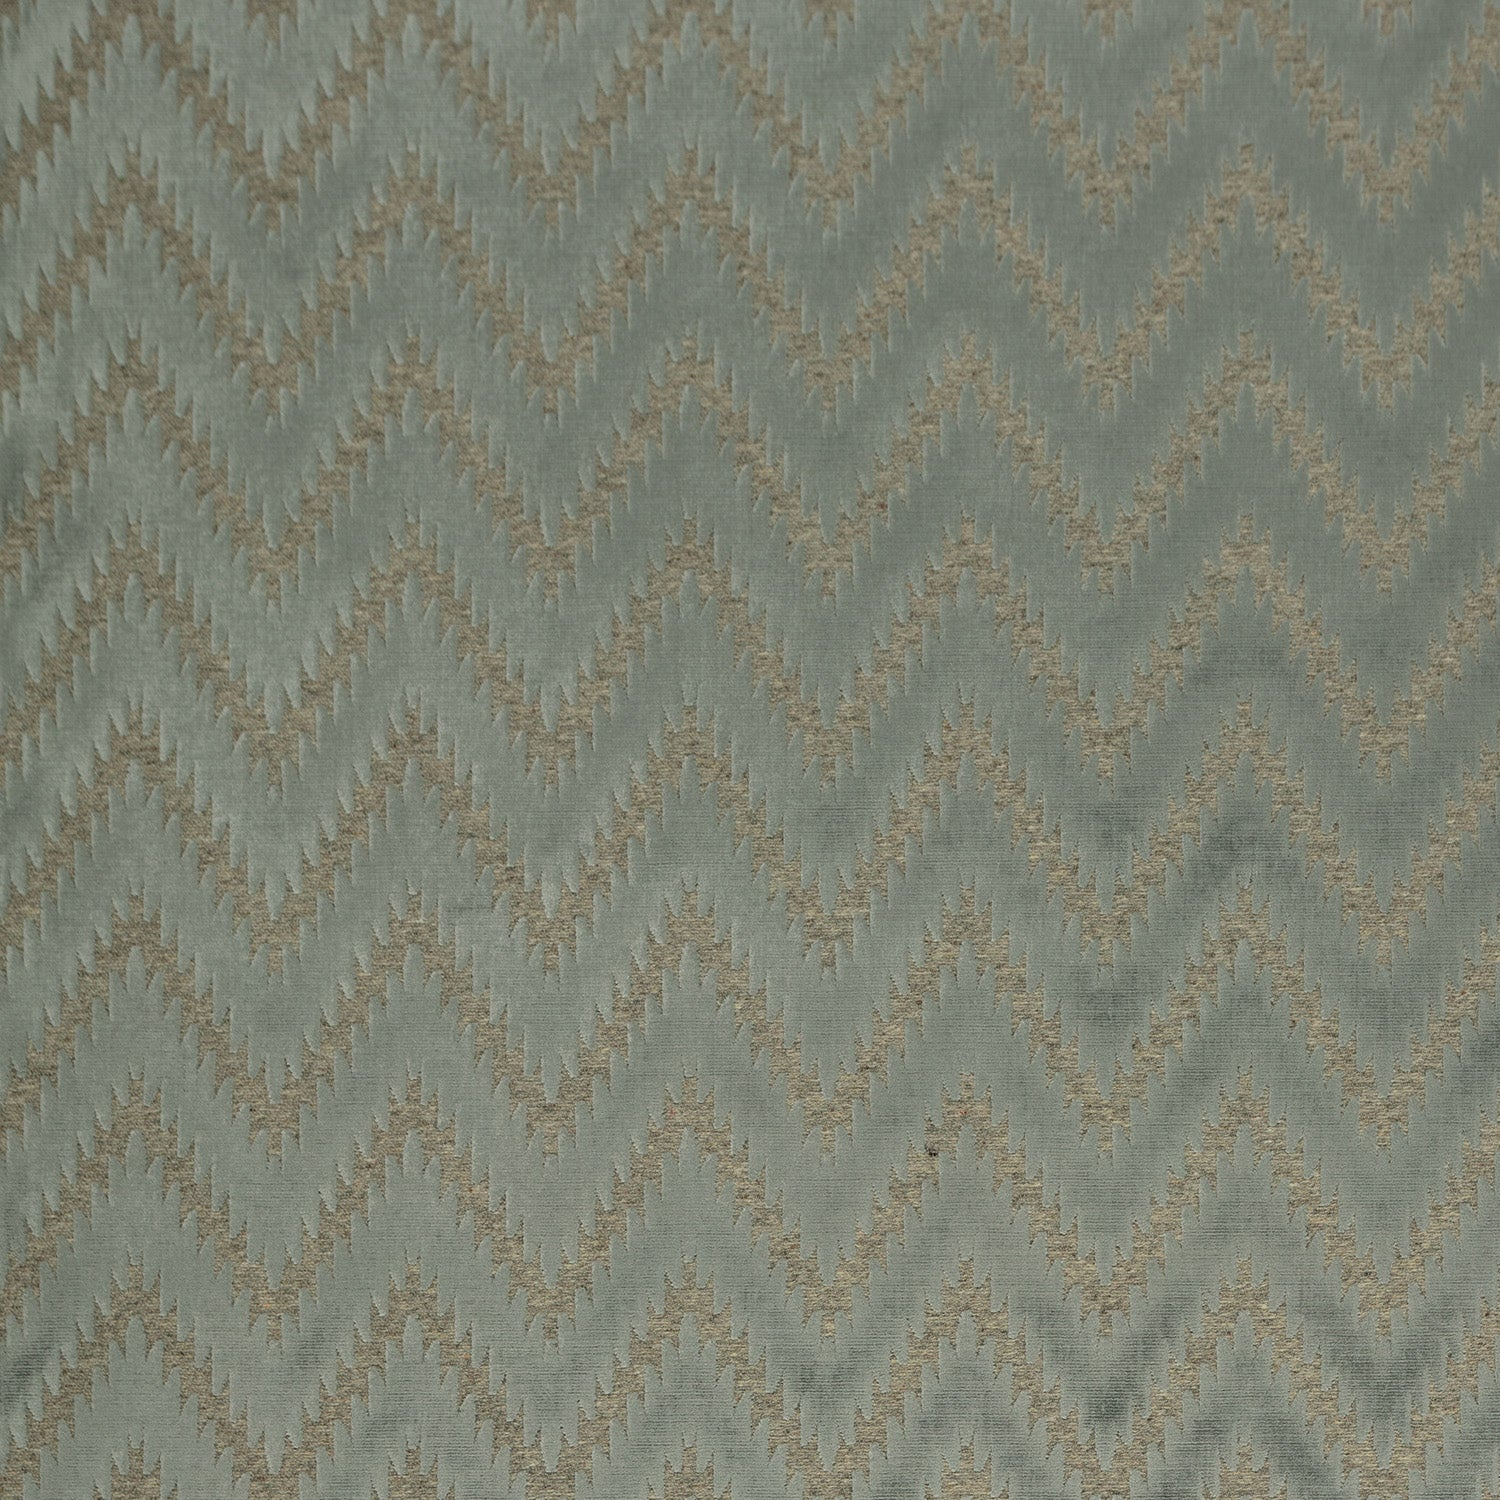 Fabric swatch of a grey wool and velvet zig zag fabric for upholstery